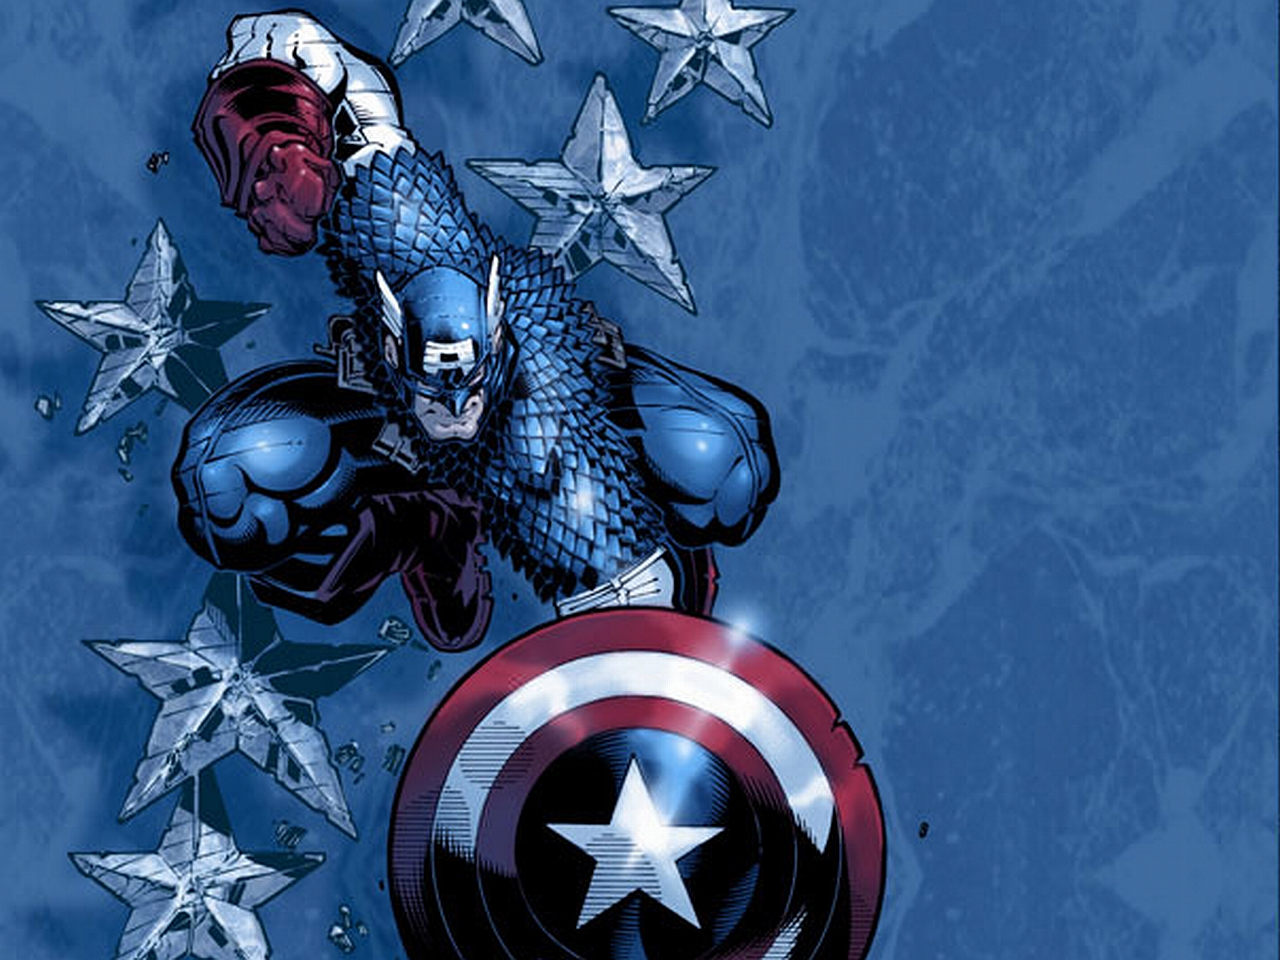 captain america Wallpaper Background 18992 1280x960